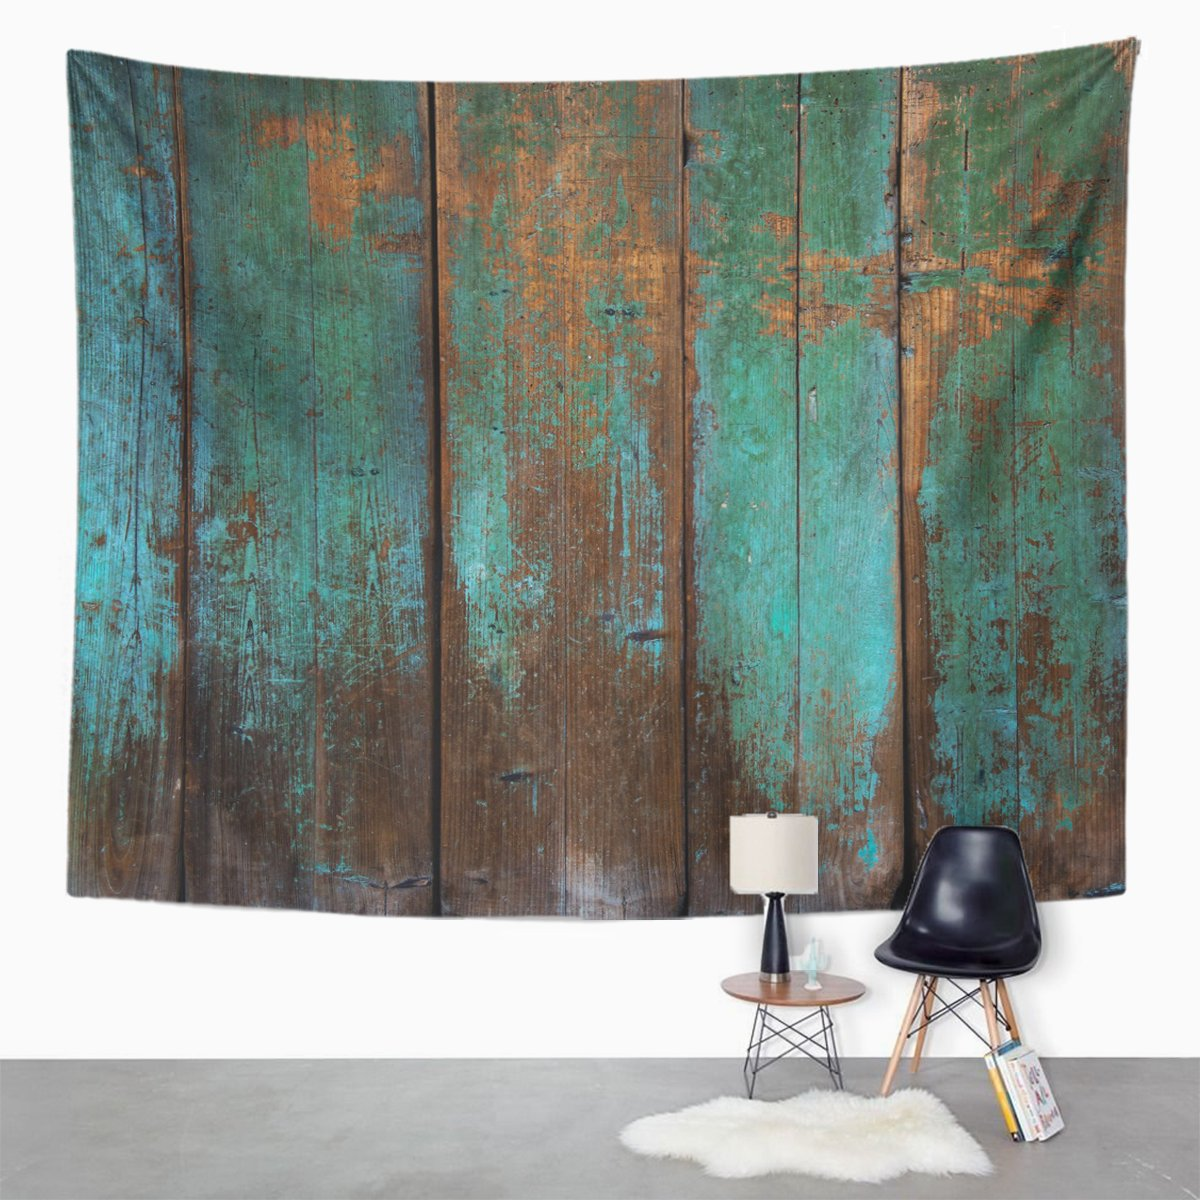 Emvency Tapestry Brown Wooden Old Grunge Wood Panels Used As Green Interior Paint Home Decor Wall Hanging for Living Room Bedroom Dorm 60x80 inches by Emvency (Image #2)